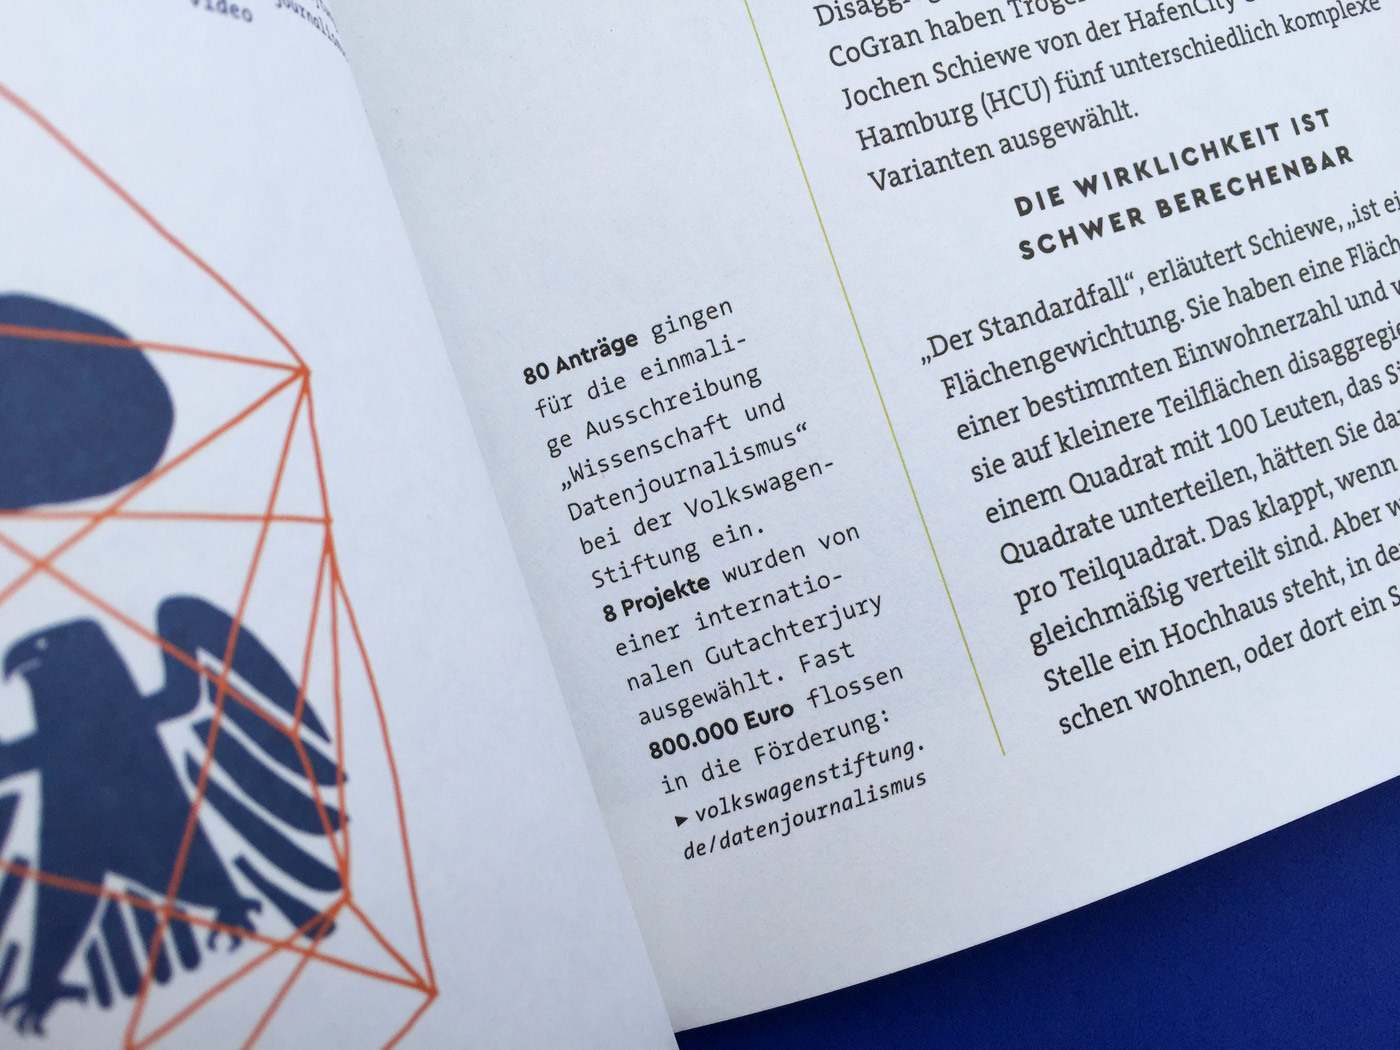 Fonts In Use Volkswagen Stiftung Magazin Corporate Publisher Territory 16 Cera Pro Thesis